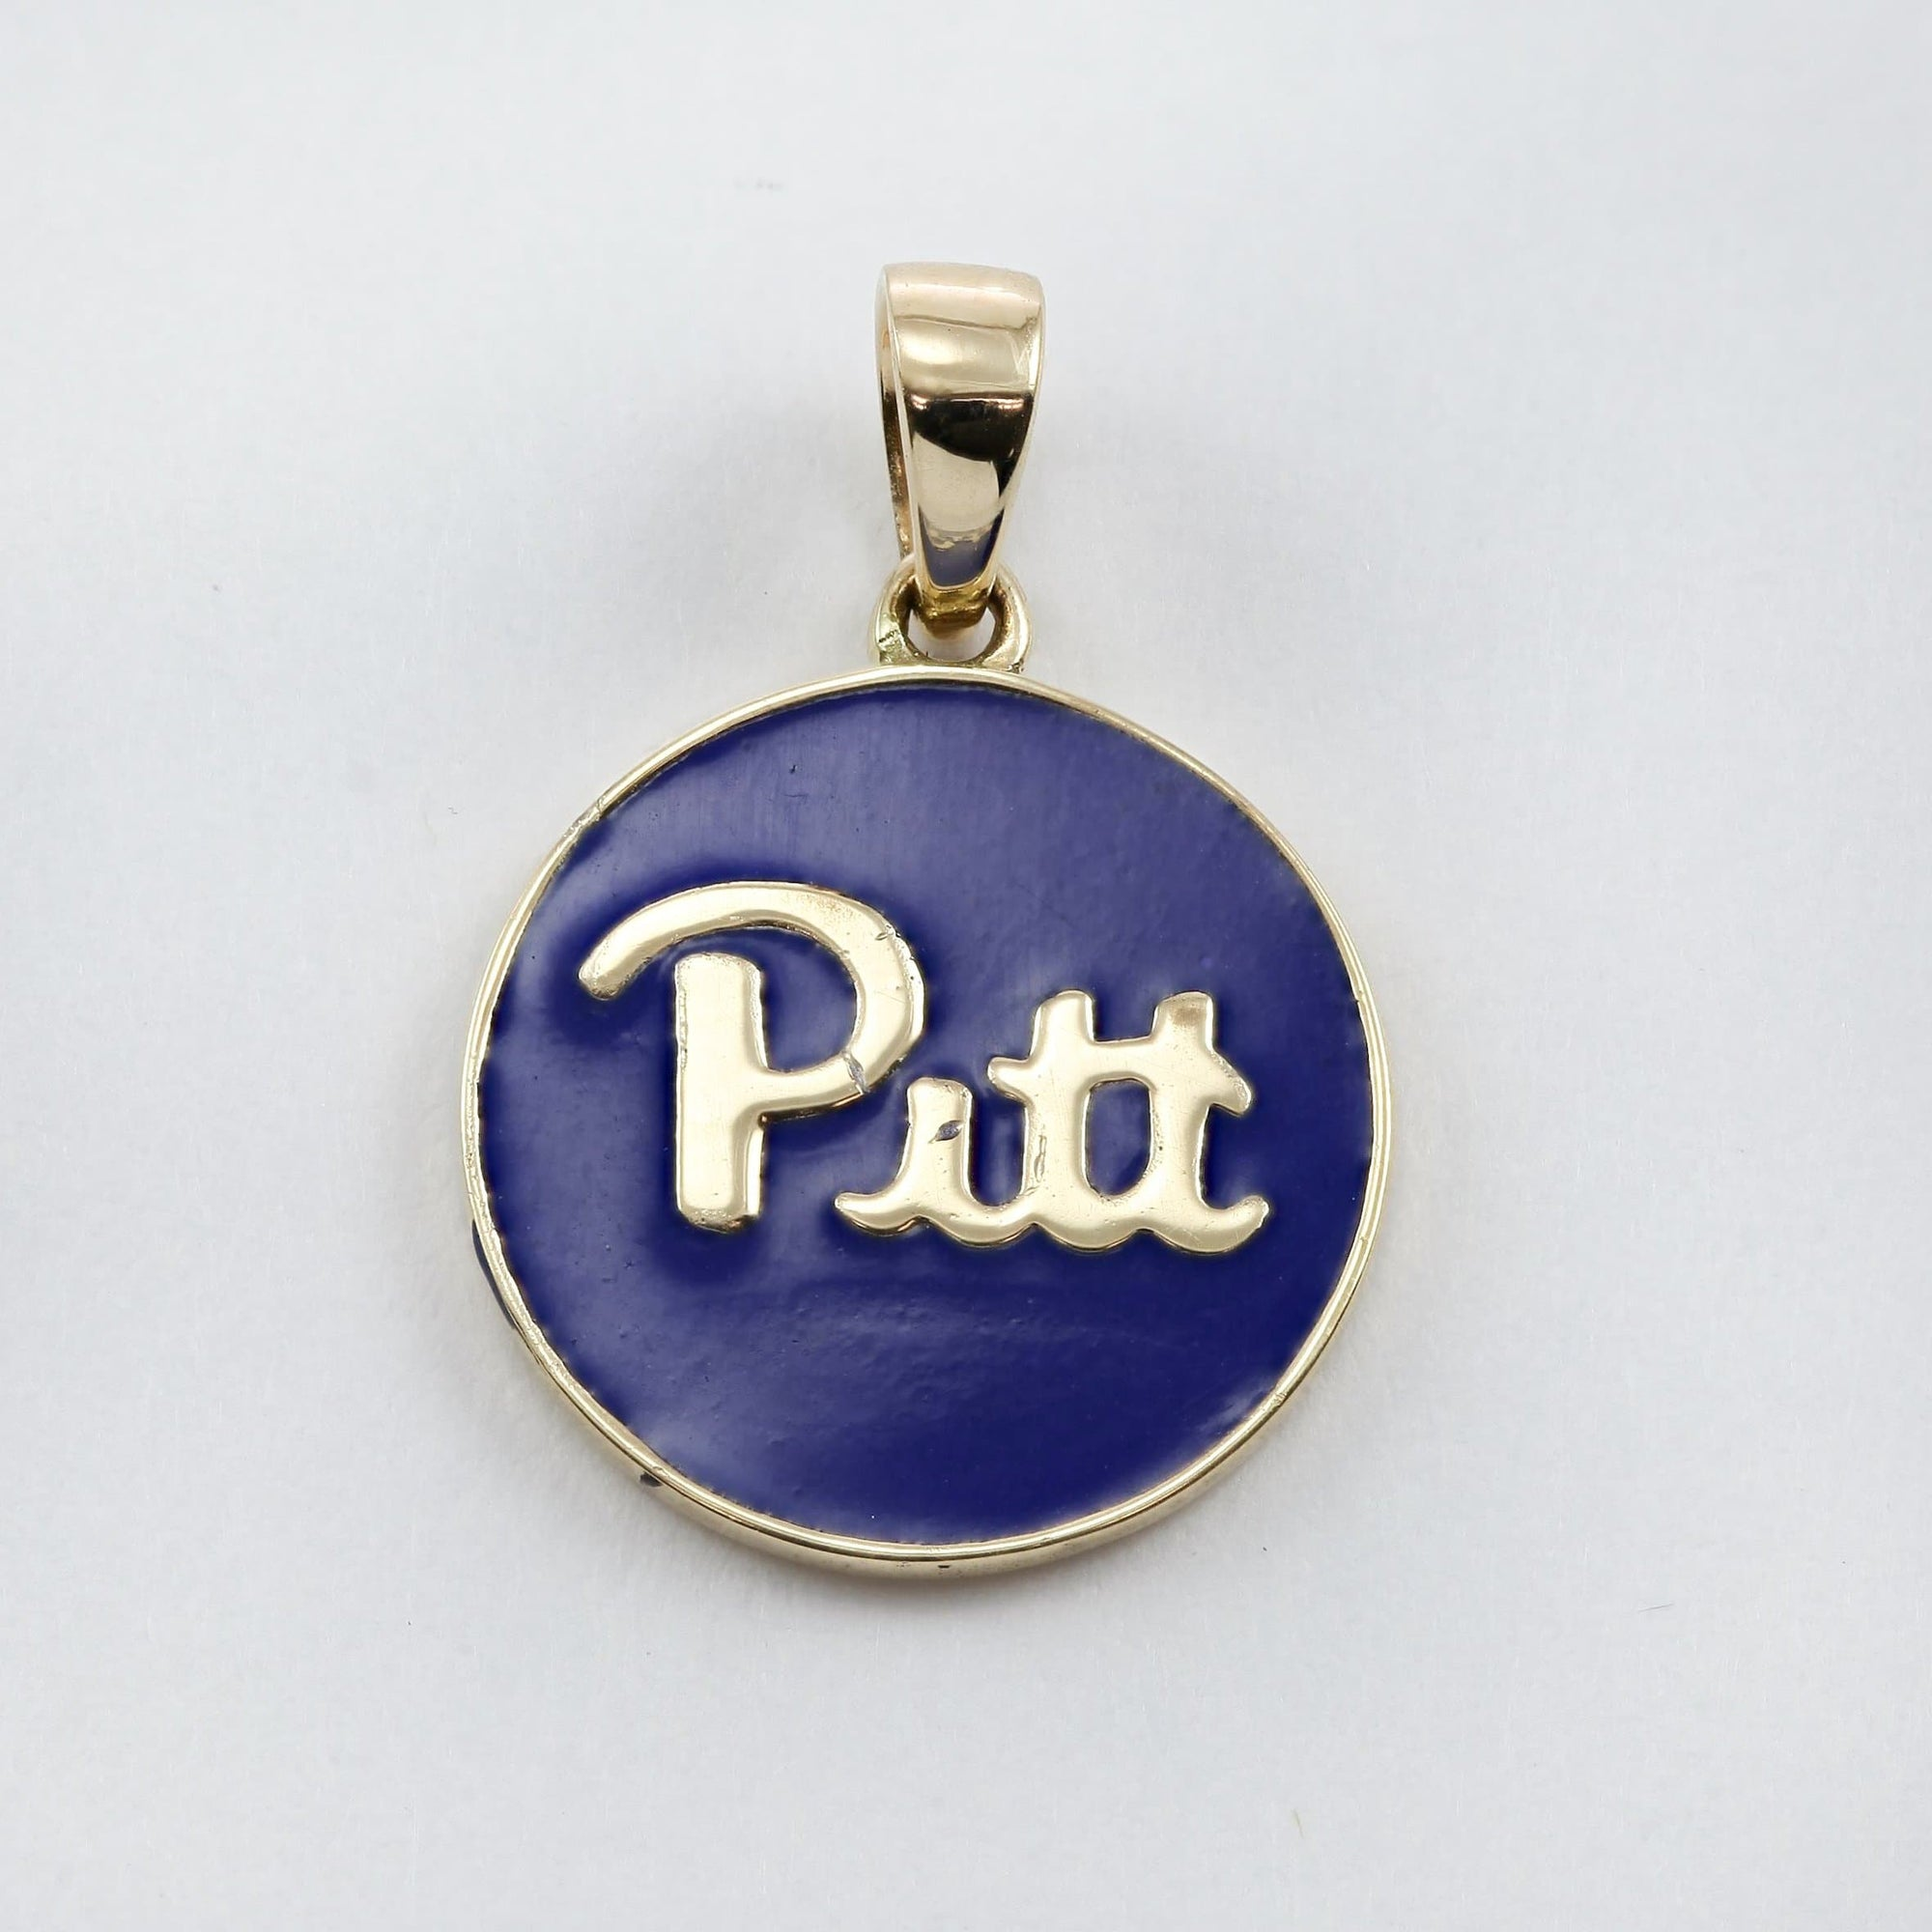 14K Yellow Gold Pitt and H2P Blue Enamel Charm